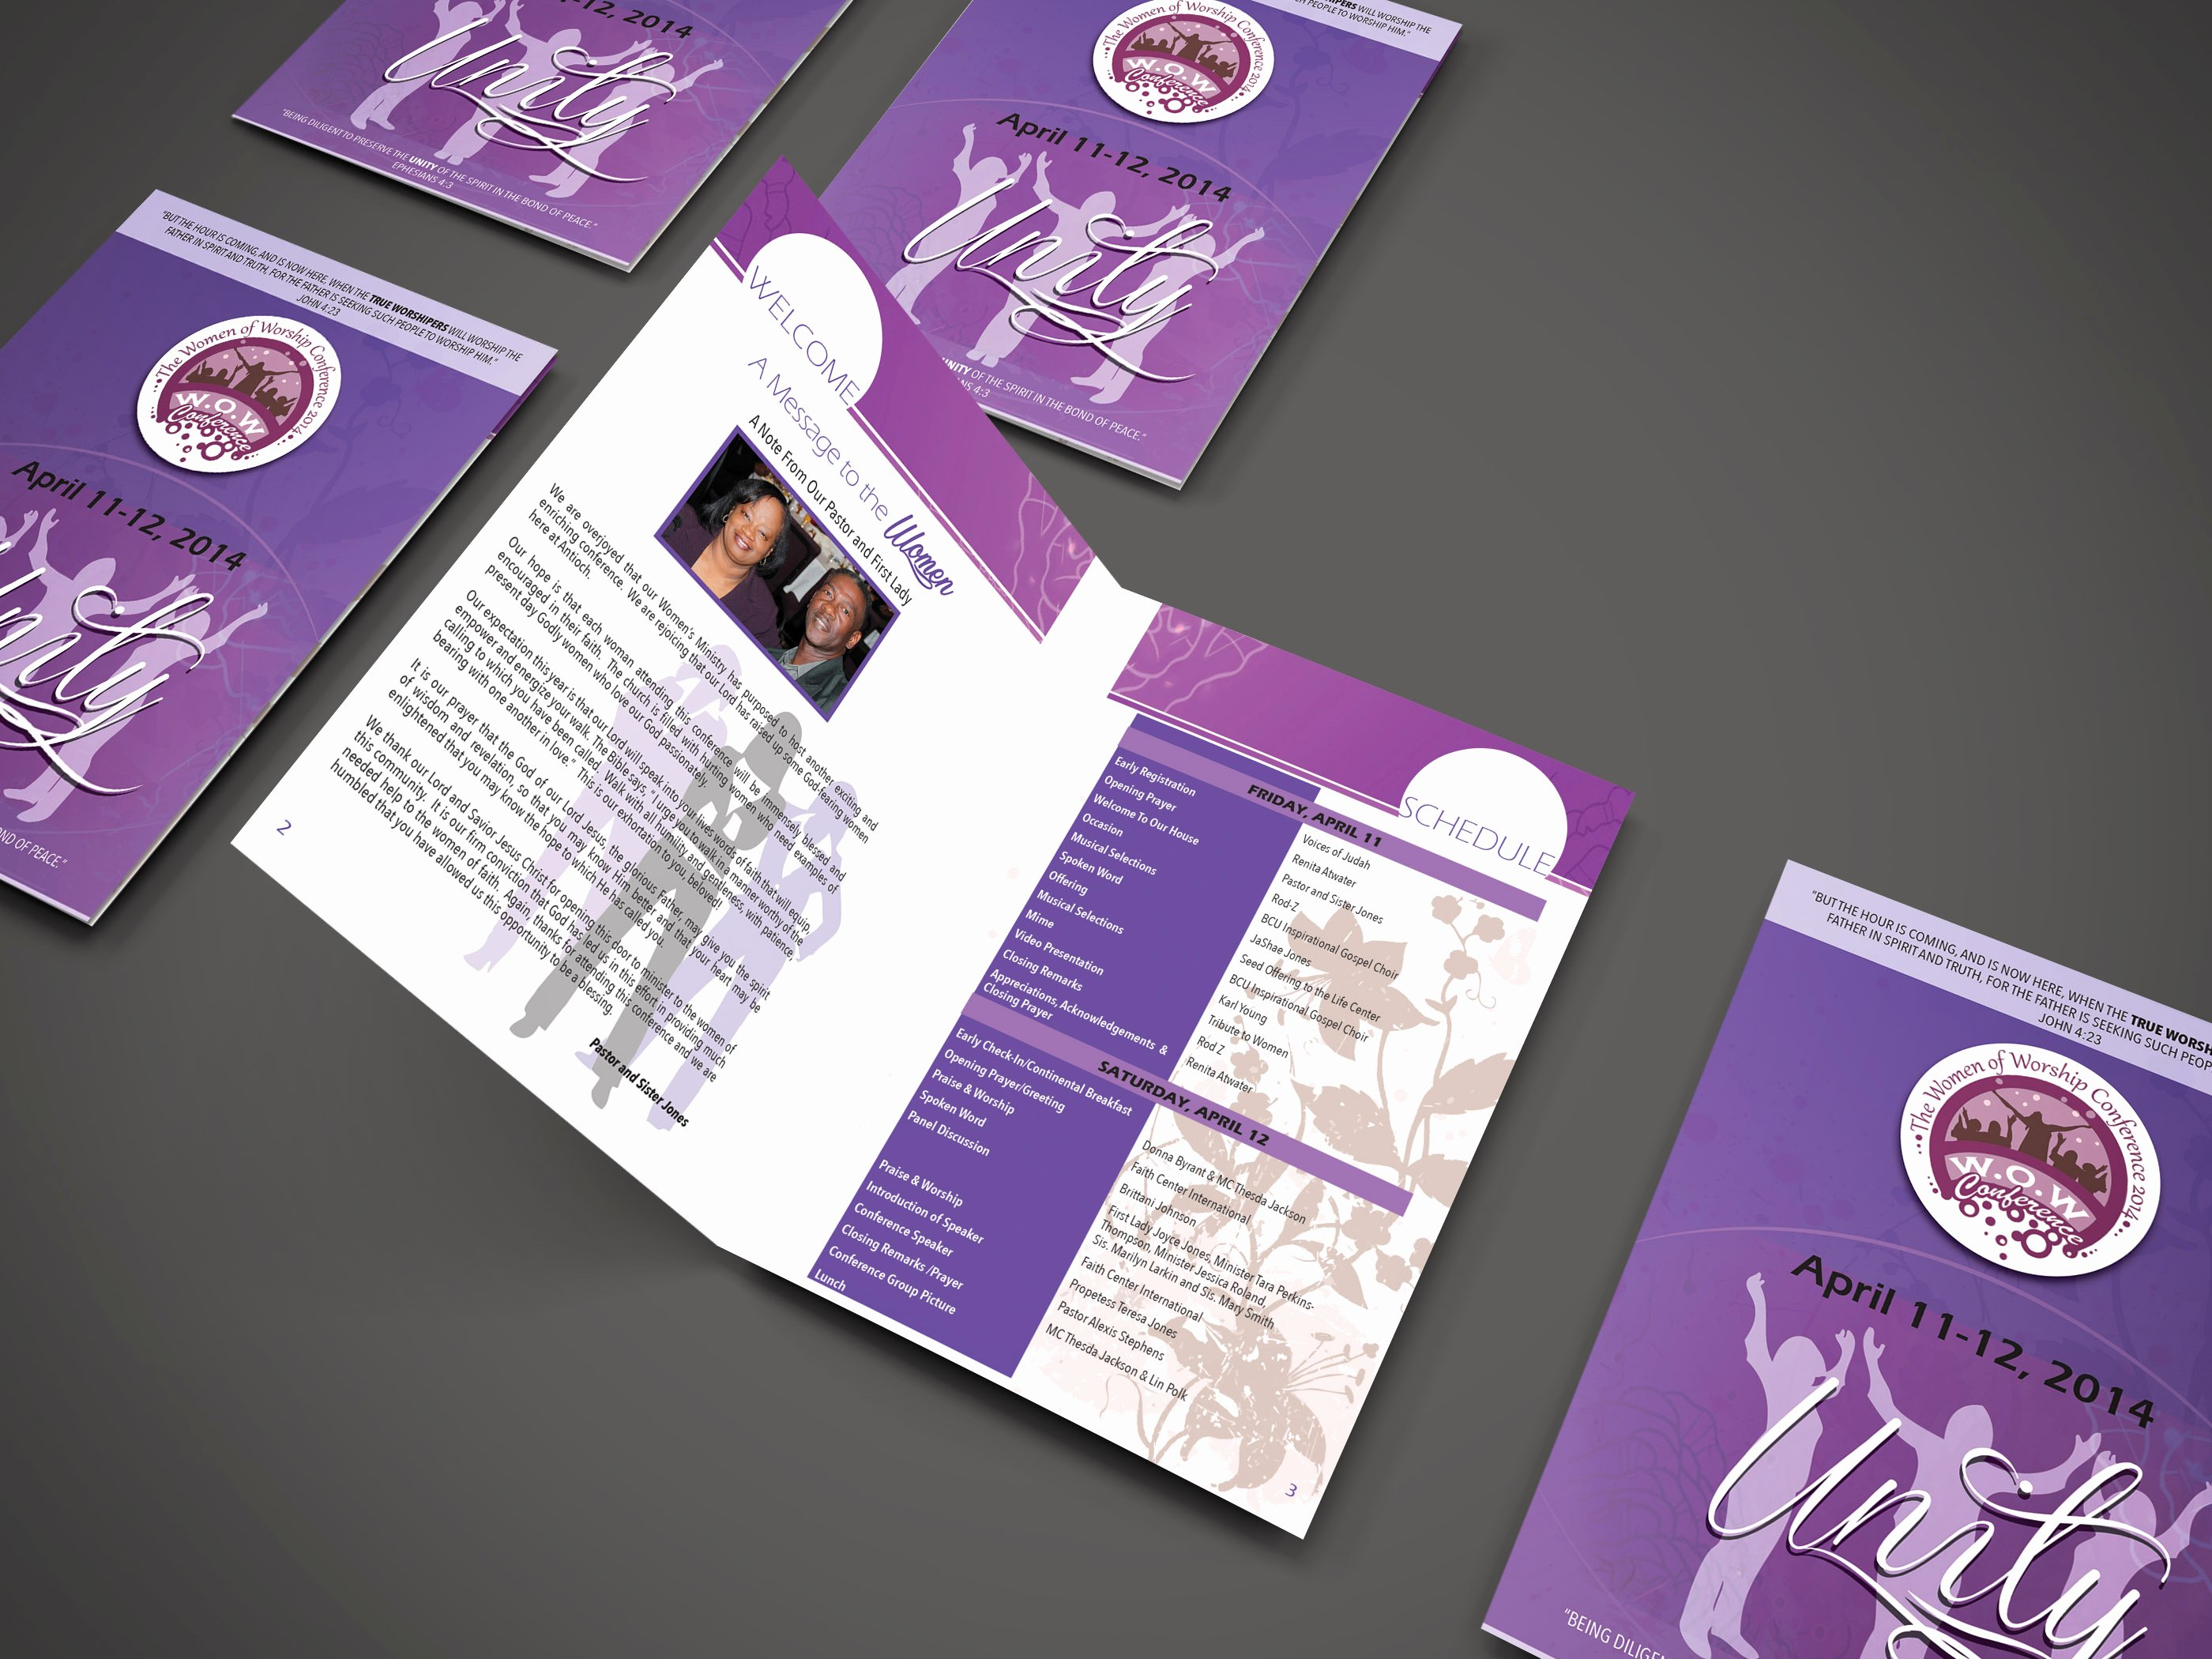 Conference Program Booklet Template Fresh Wow Women S Conference 2014 Program